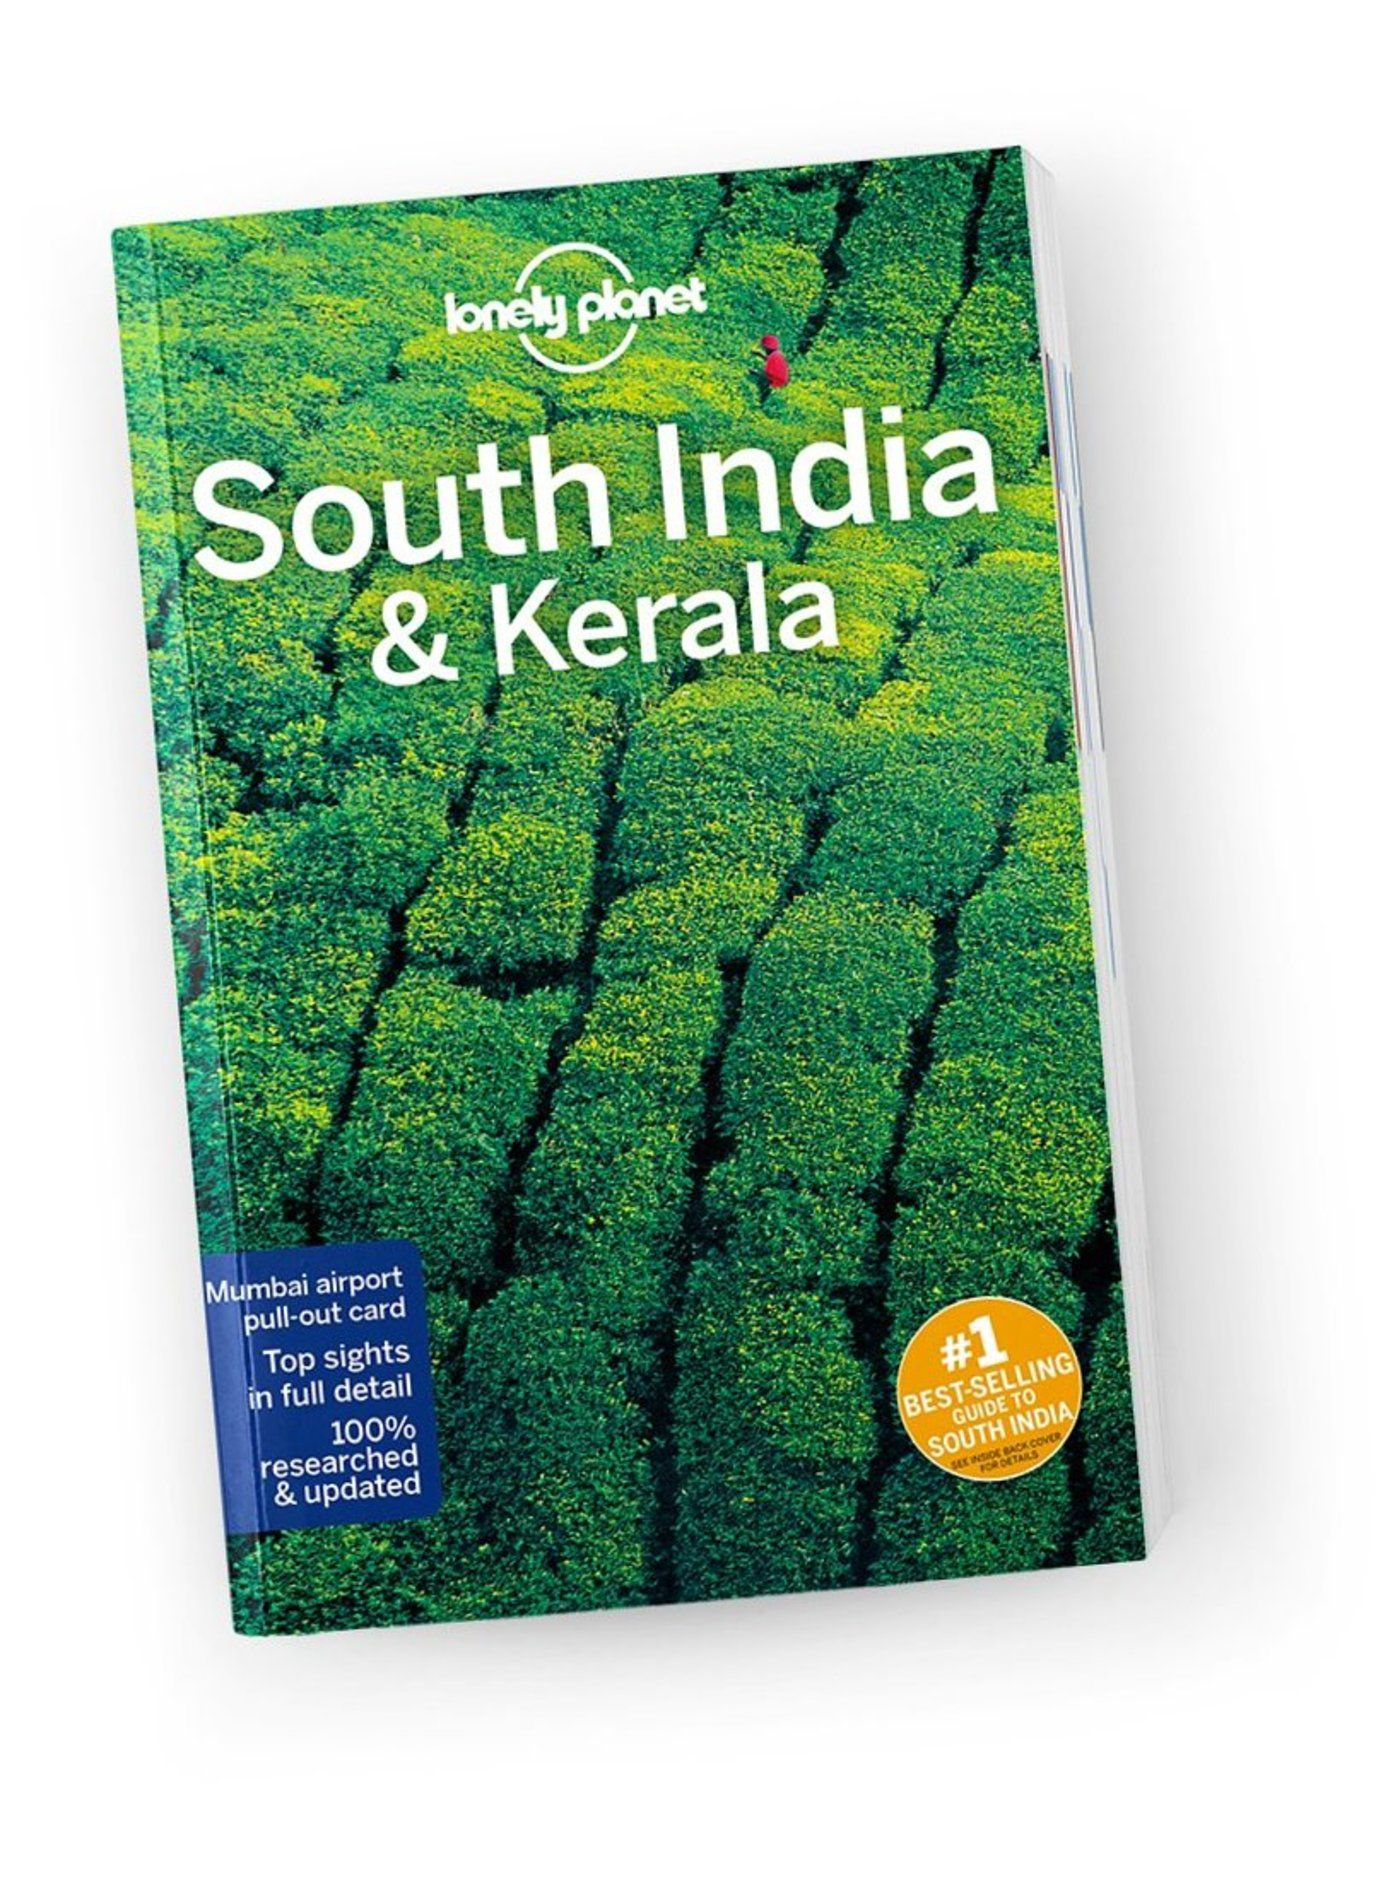 South India & Kerala travel guide - 10th edition